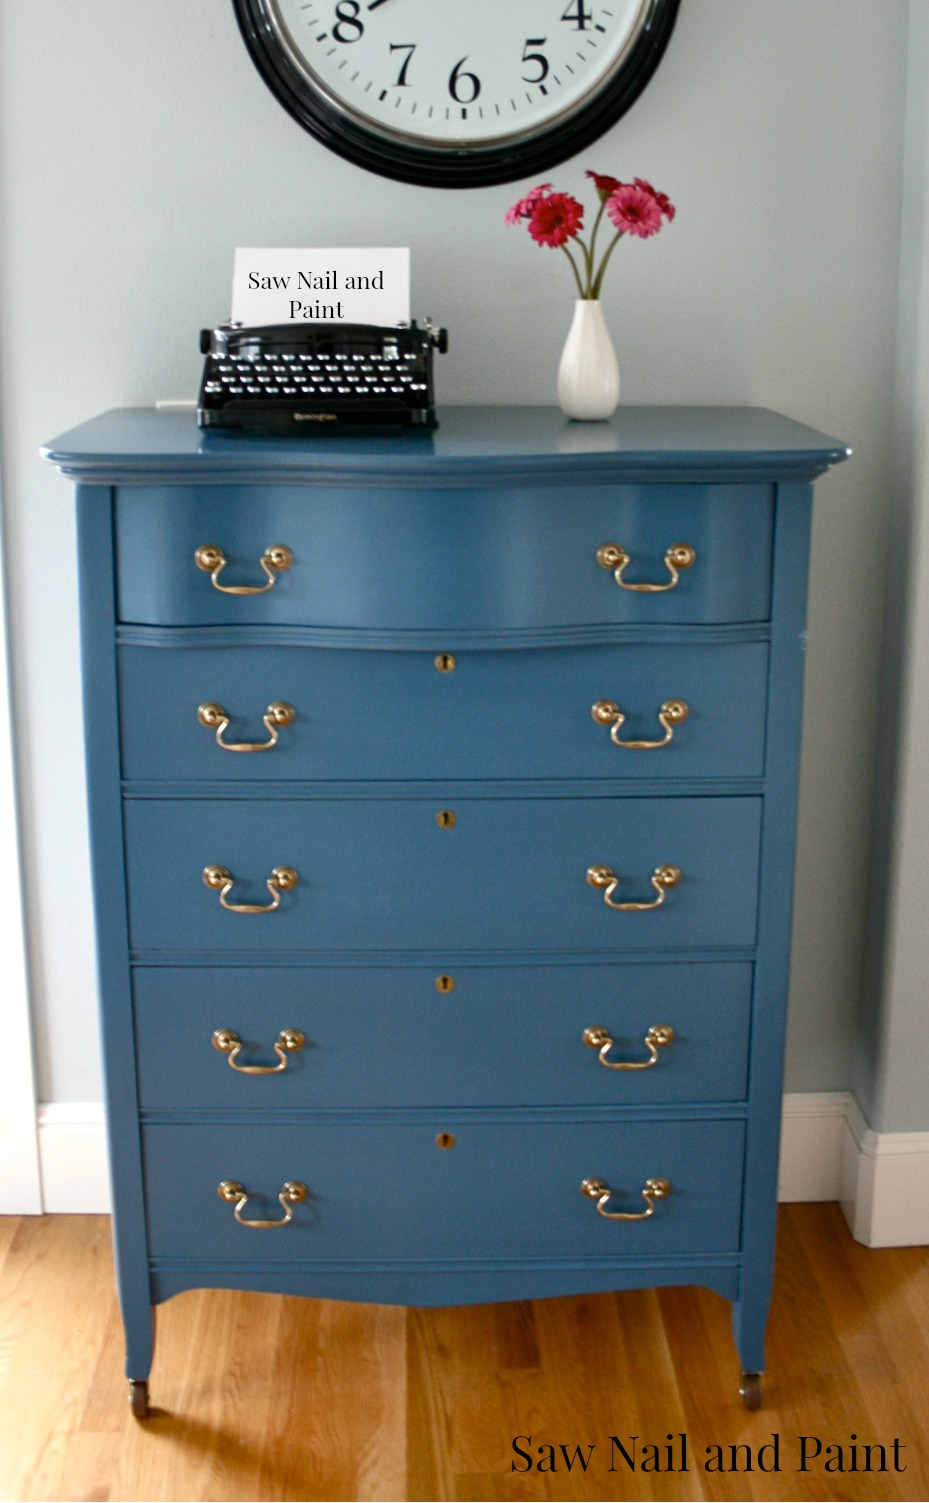 Vintage Blue Serpentine Dresser Saw Nail And Paint